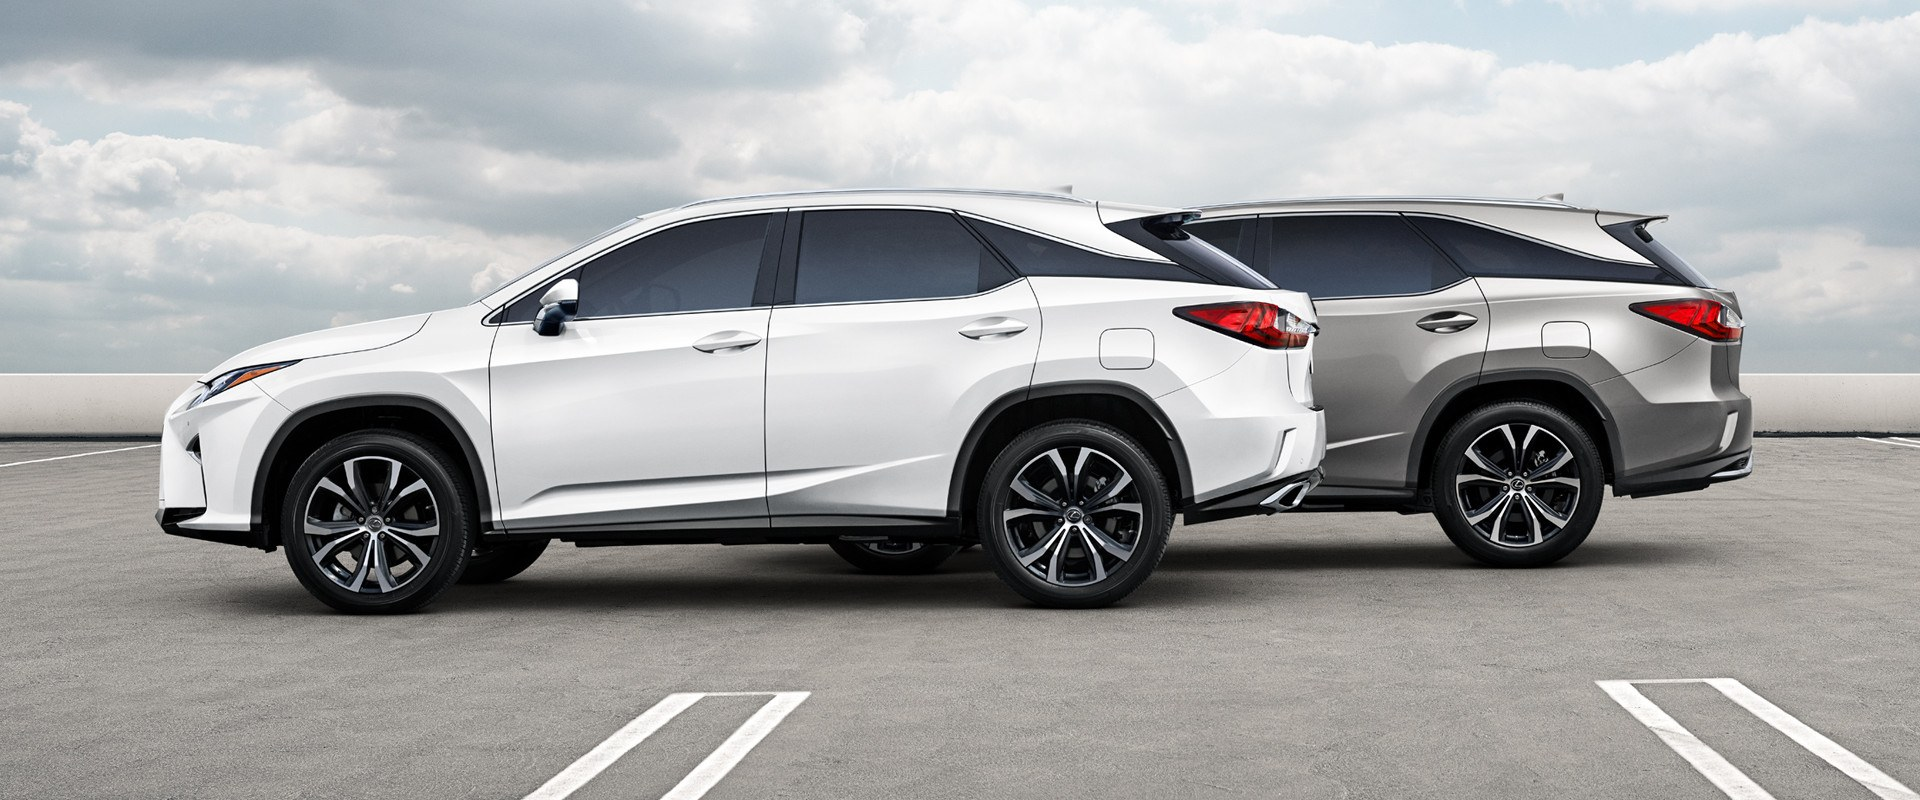 2018 Lexus RX L at Ken Shaw Lexus in the Greater Toronto Area GTA, Ontario, Canada